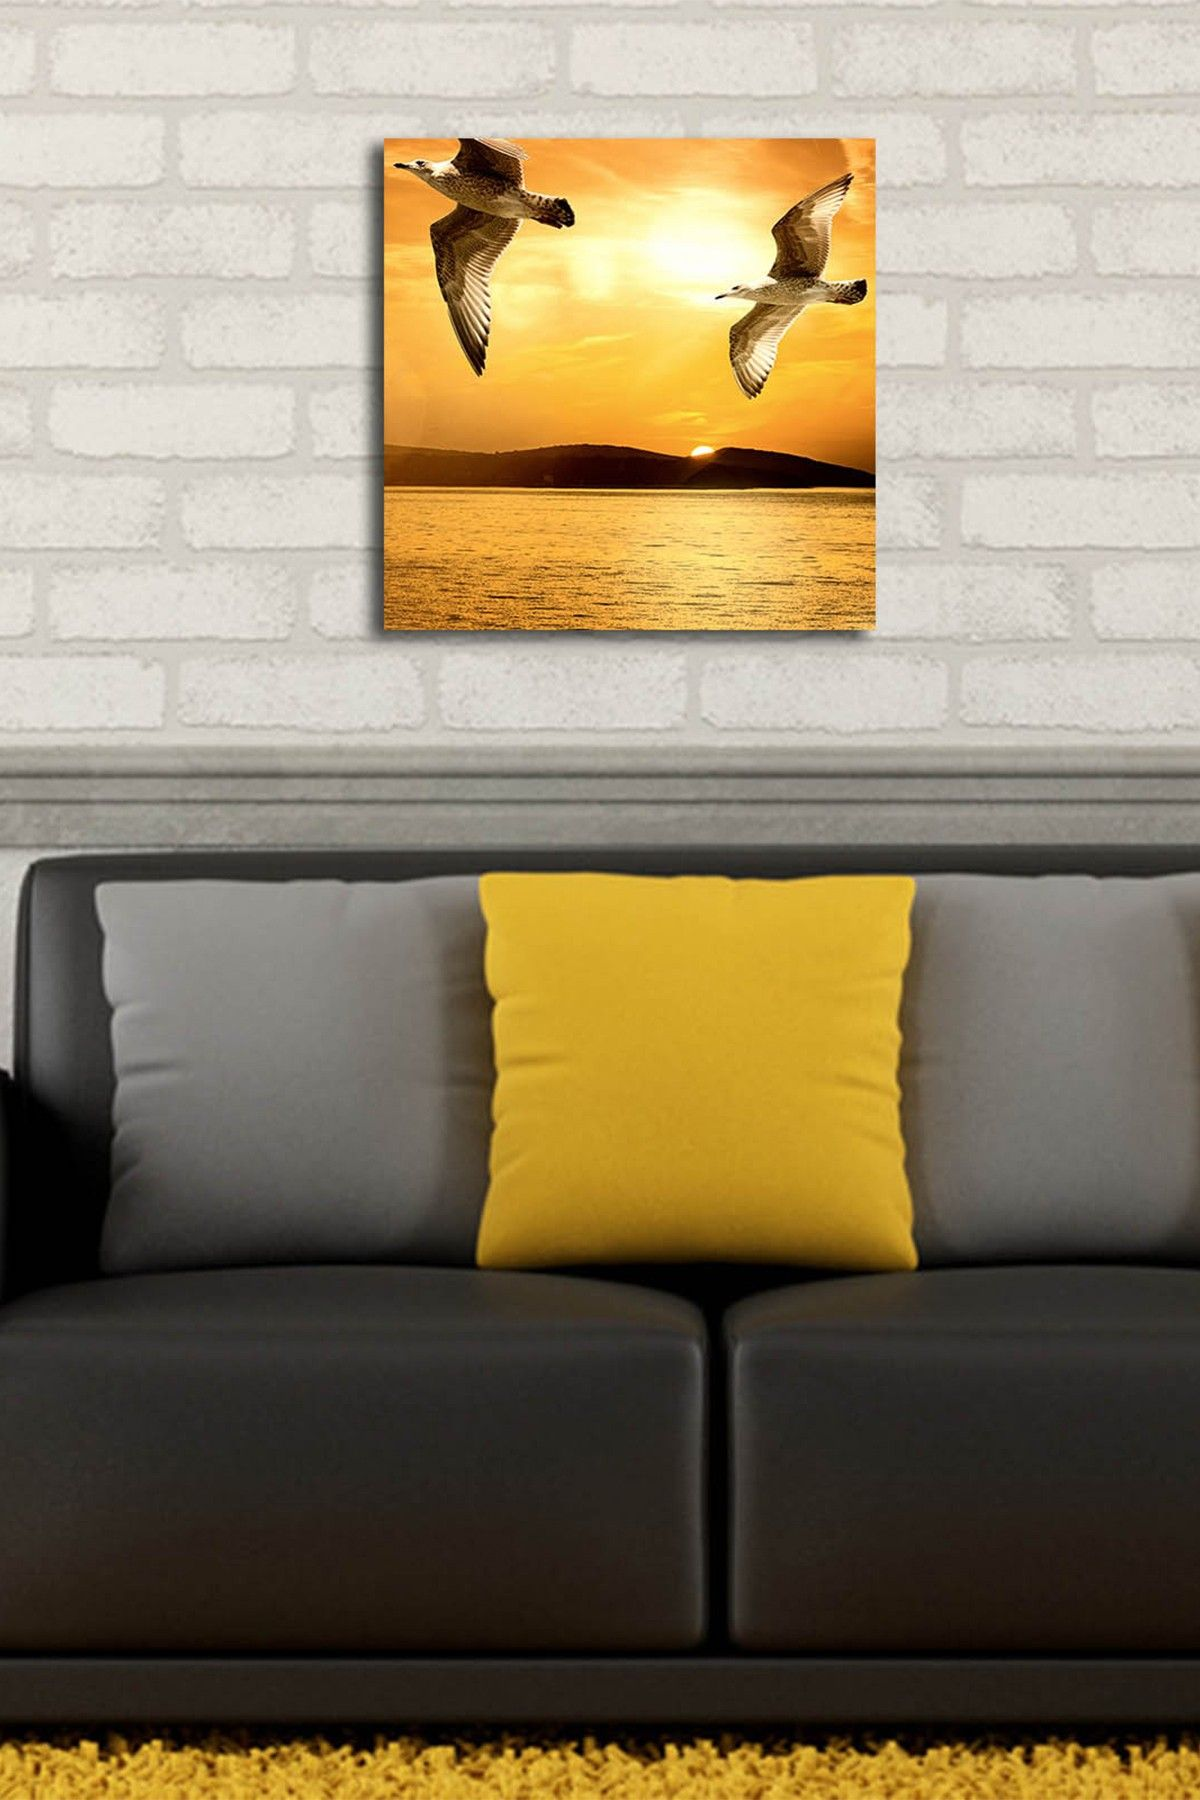 Luxury Seagull Wall Decor Images - Art & Wall Decor - hecatalog.info